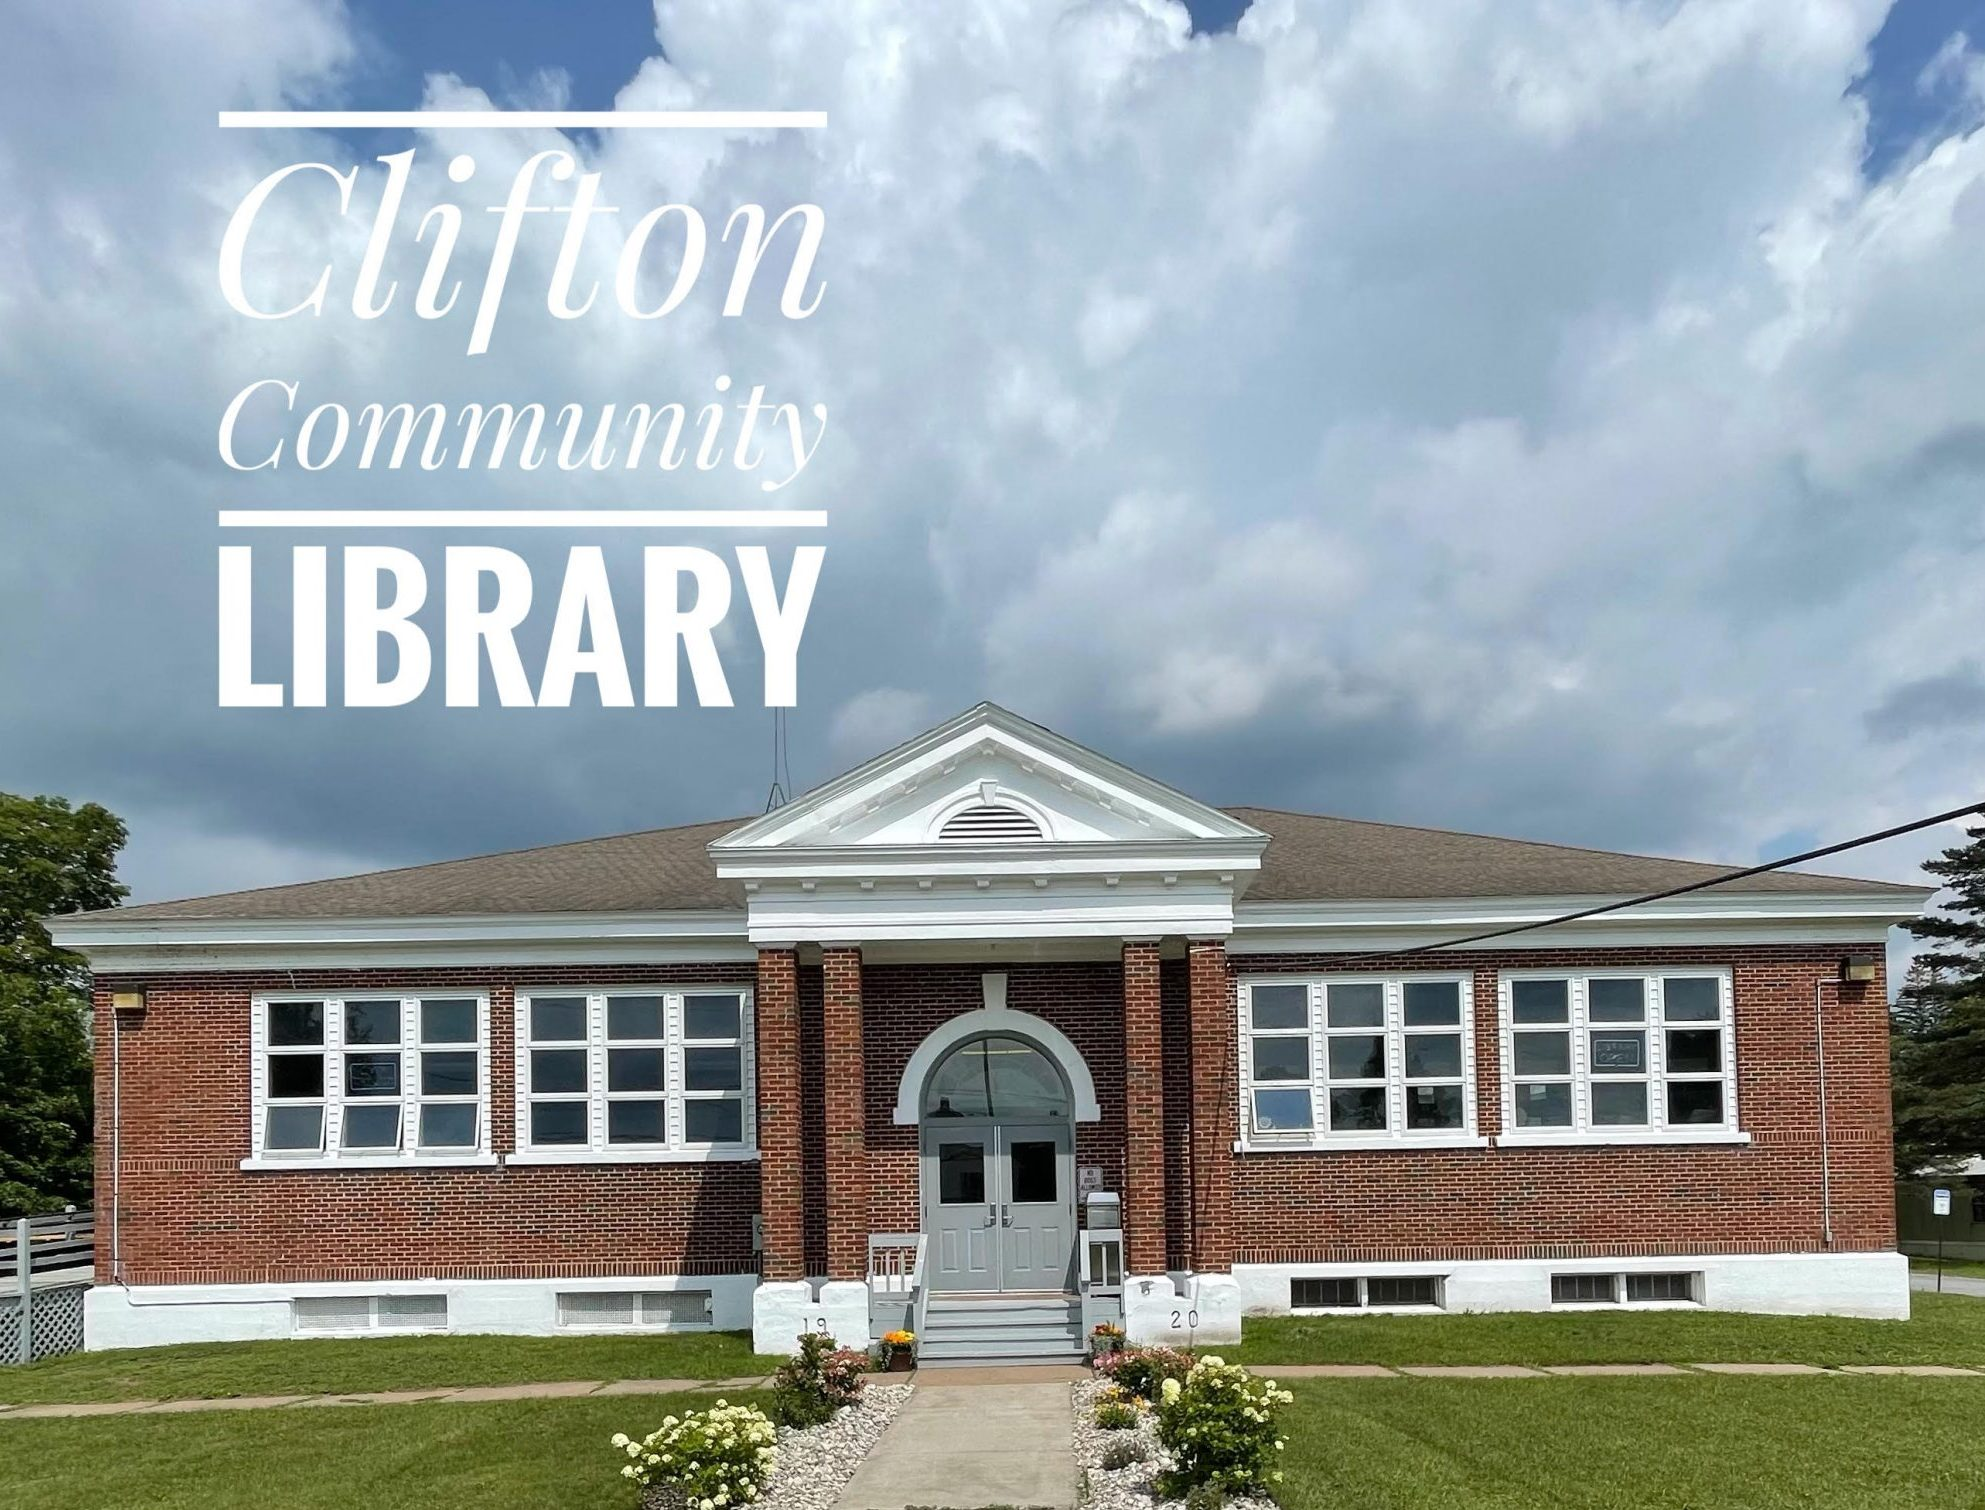 Clifton Community Library